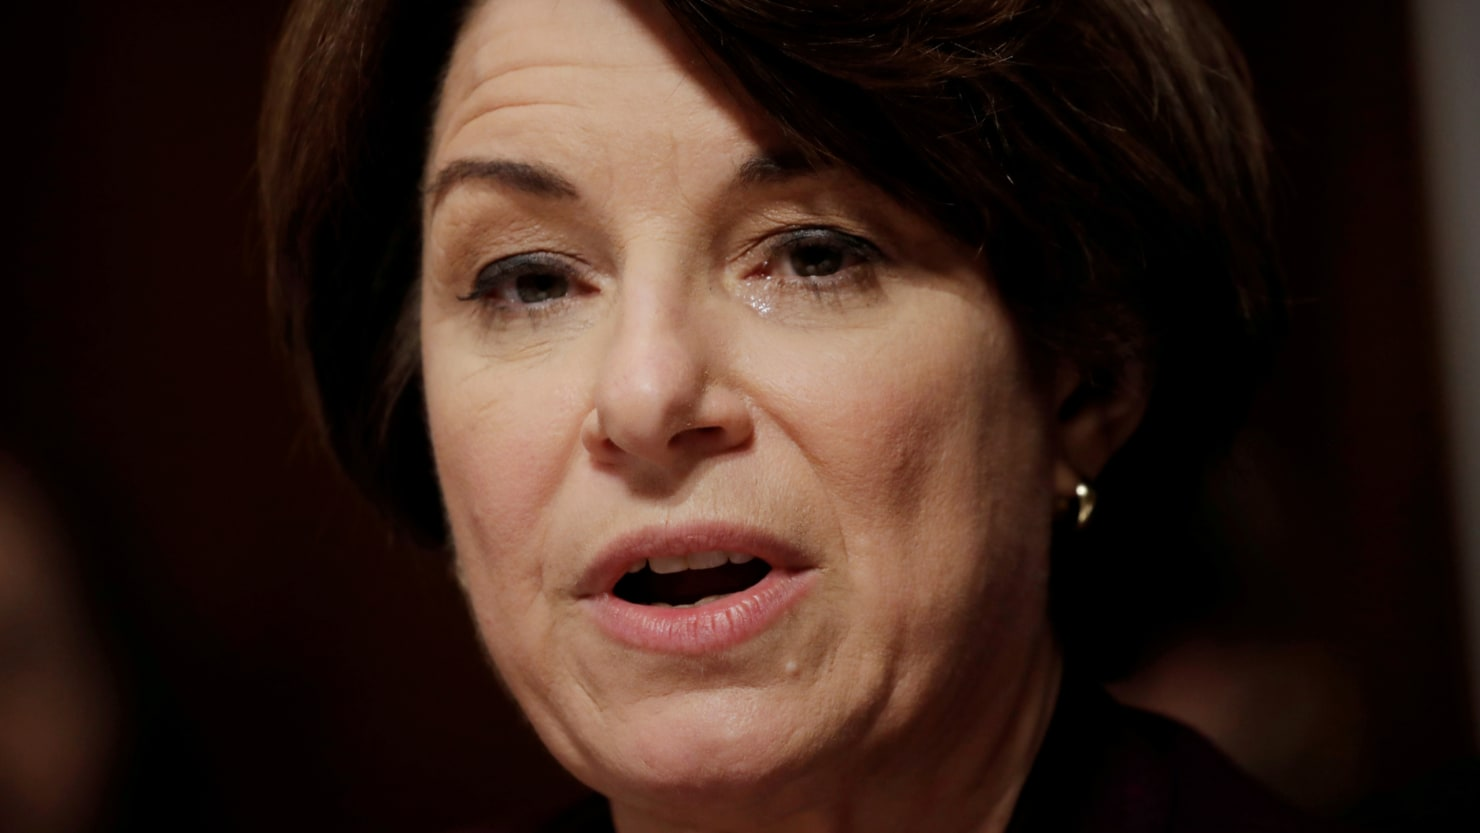 Klobuchar's Office Required Staff to Stay on After Taking Family Leave: Report